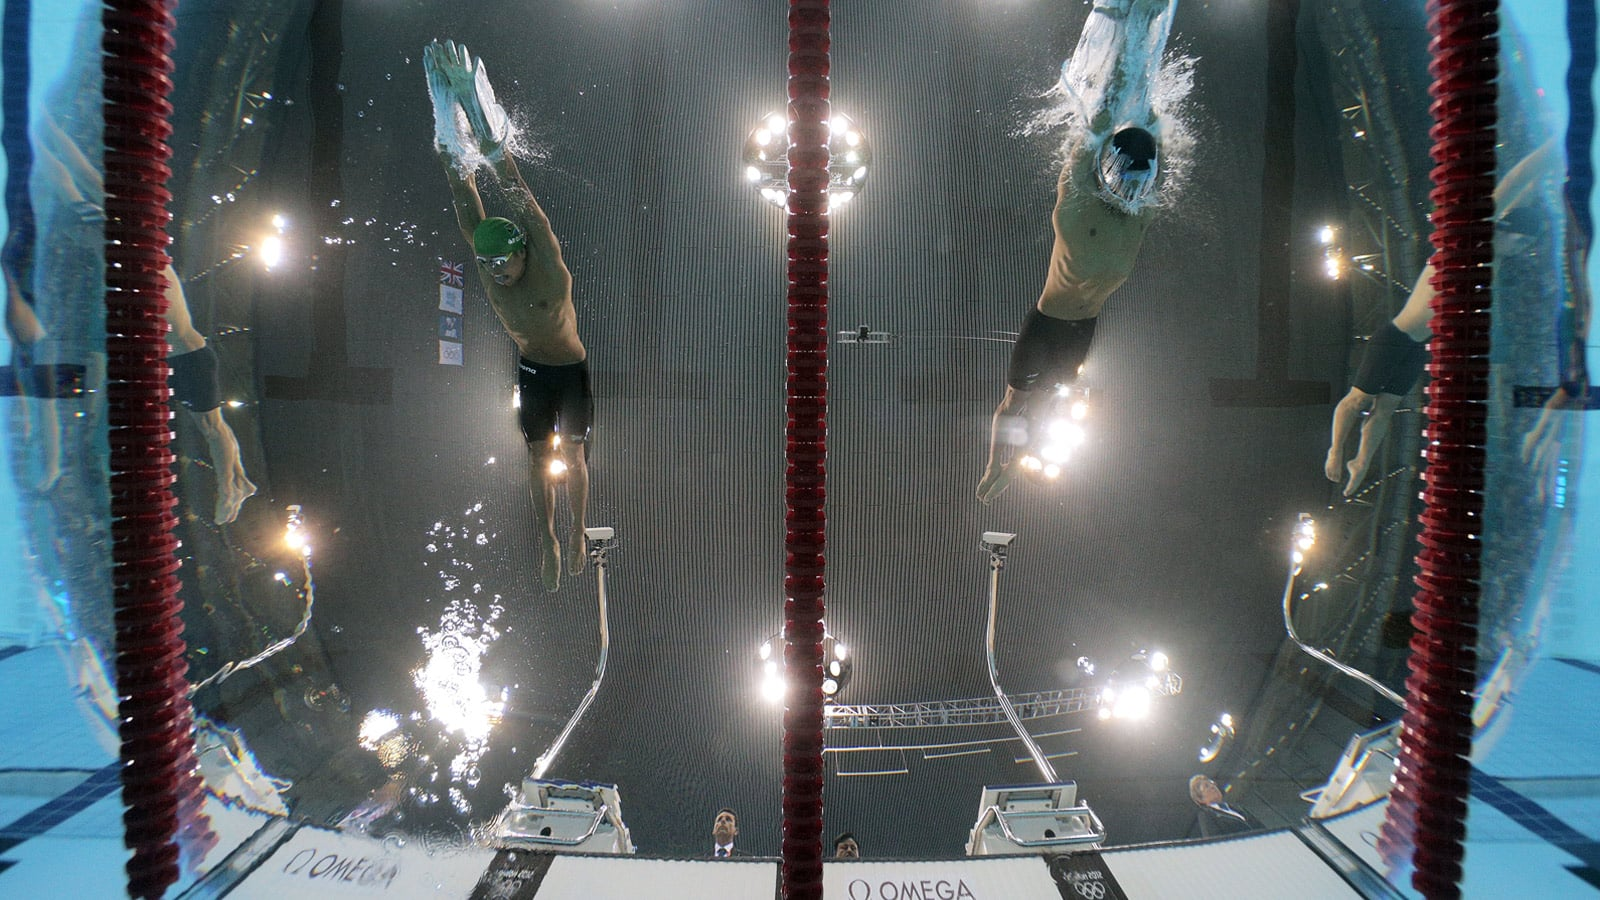 2 swimmers seen from the very bottom of the swimming pool